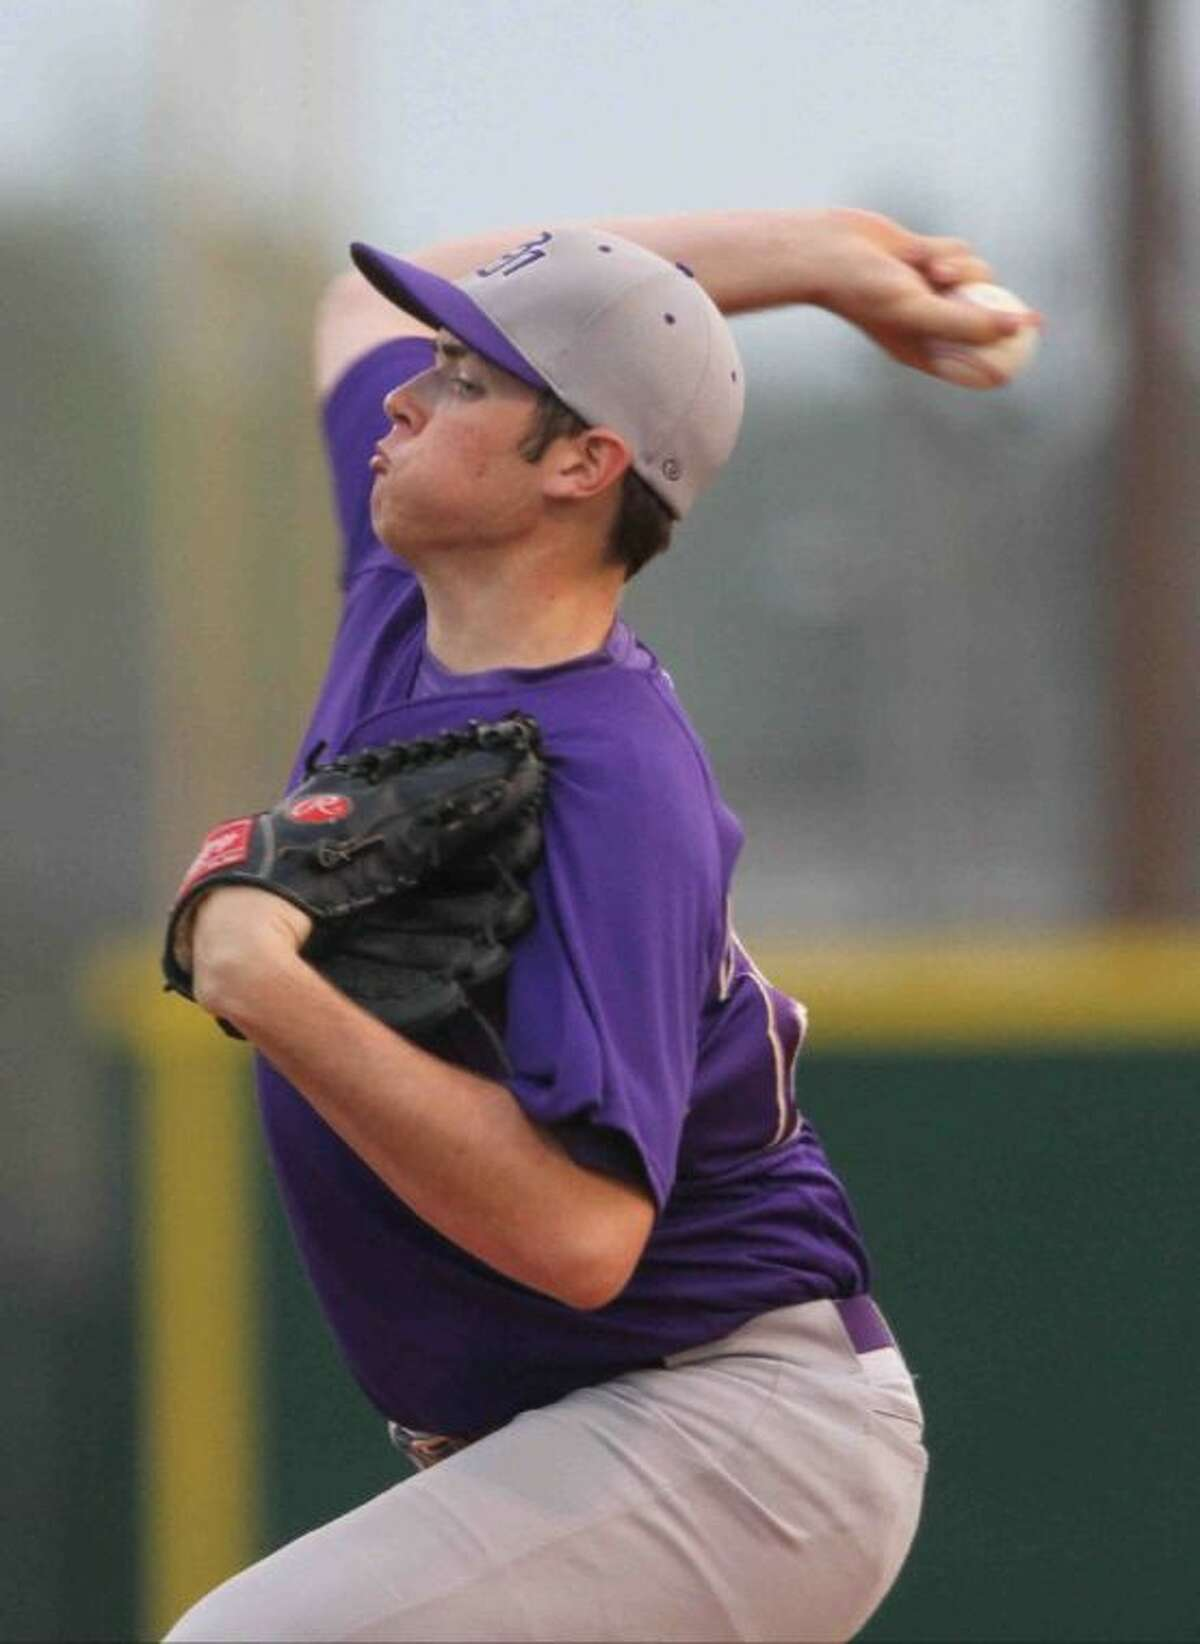 Montgomery pitcher Collin Garrett was 6-0 with a 1.01 ERA in 34 2/3 District 18-4A innings.